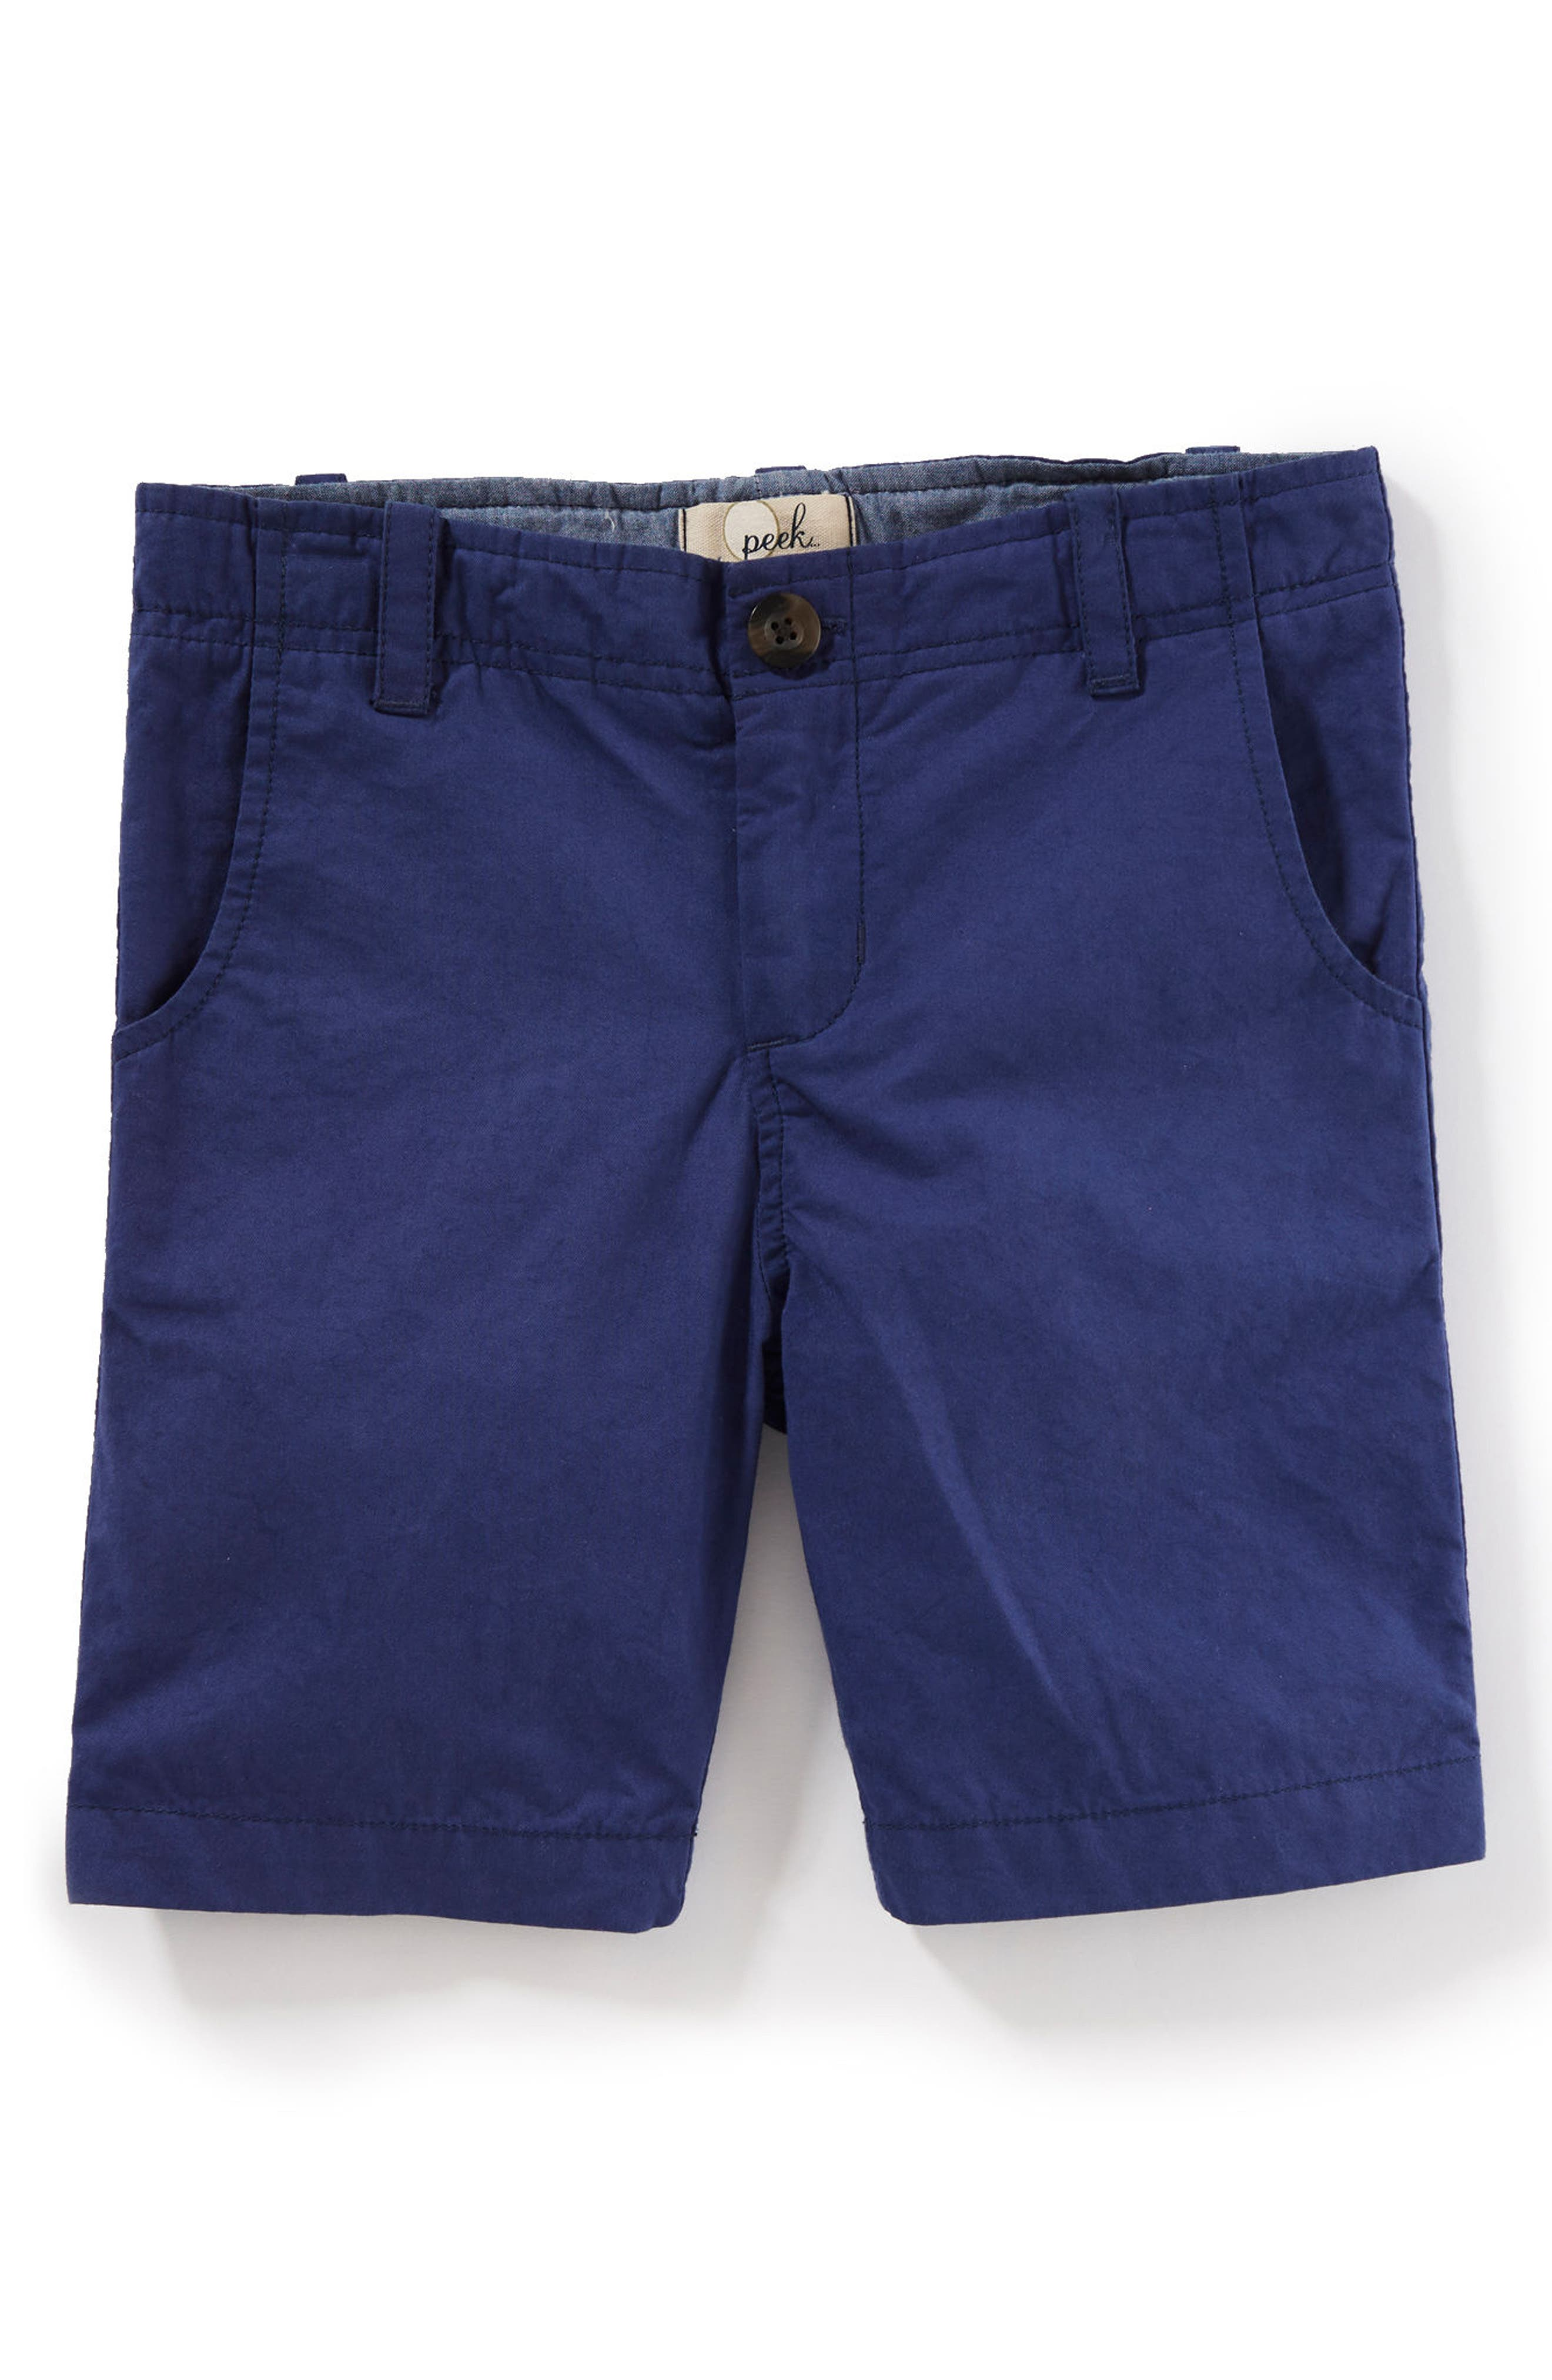 Hudson Shorts,                             Main thumbnail 1, color,                             400